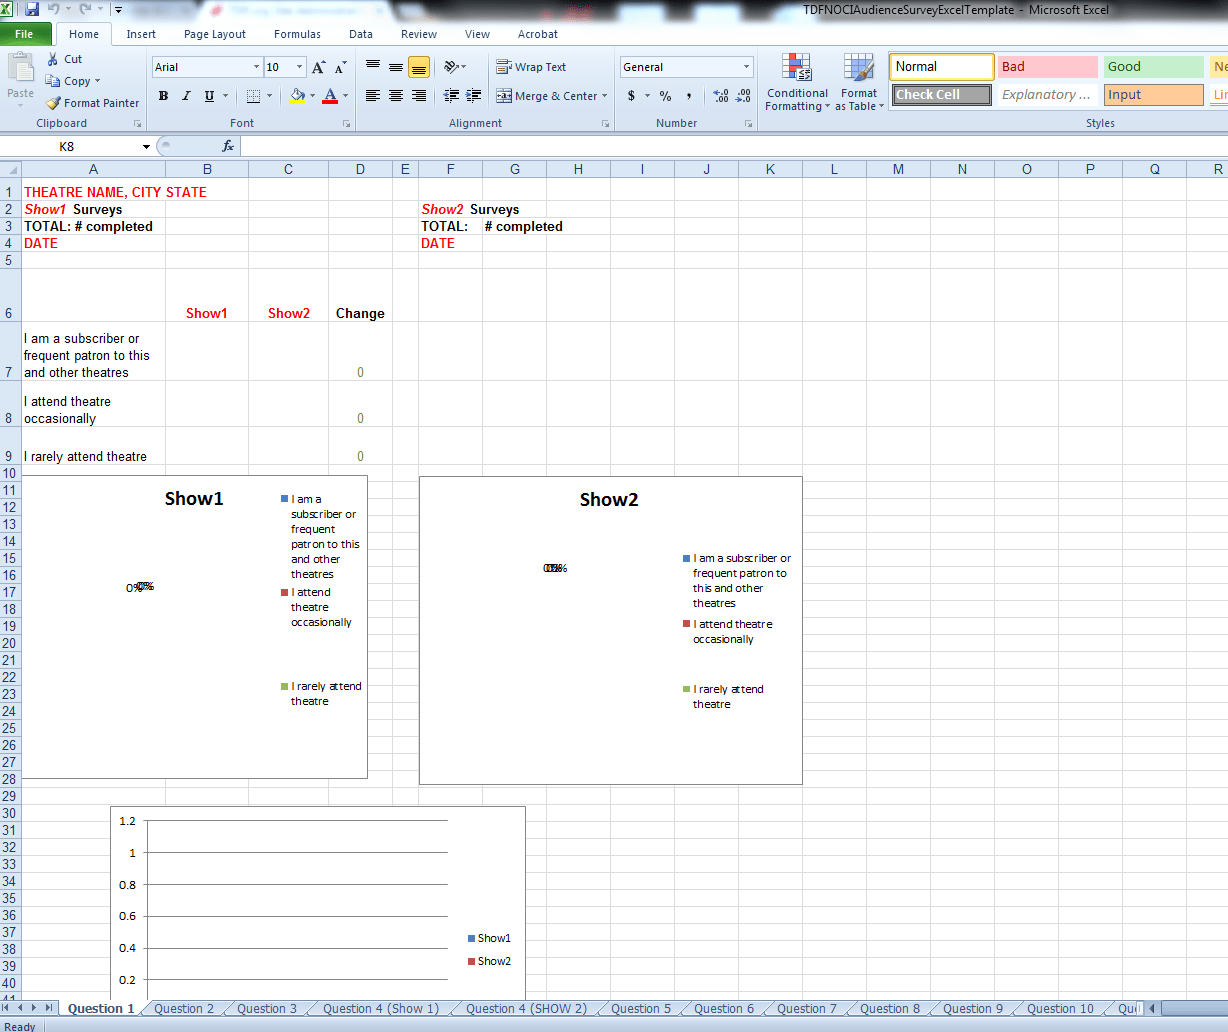 Download Survey Template Image Of Excel Sheet